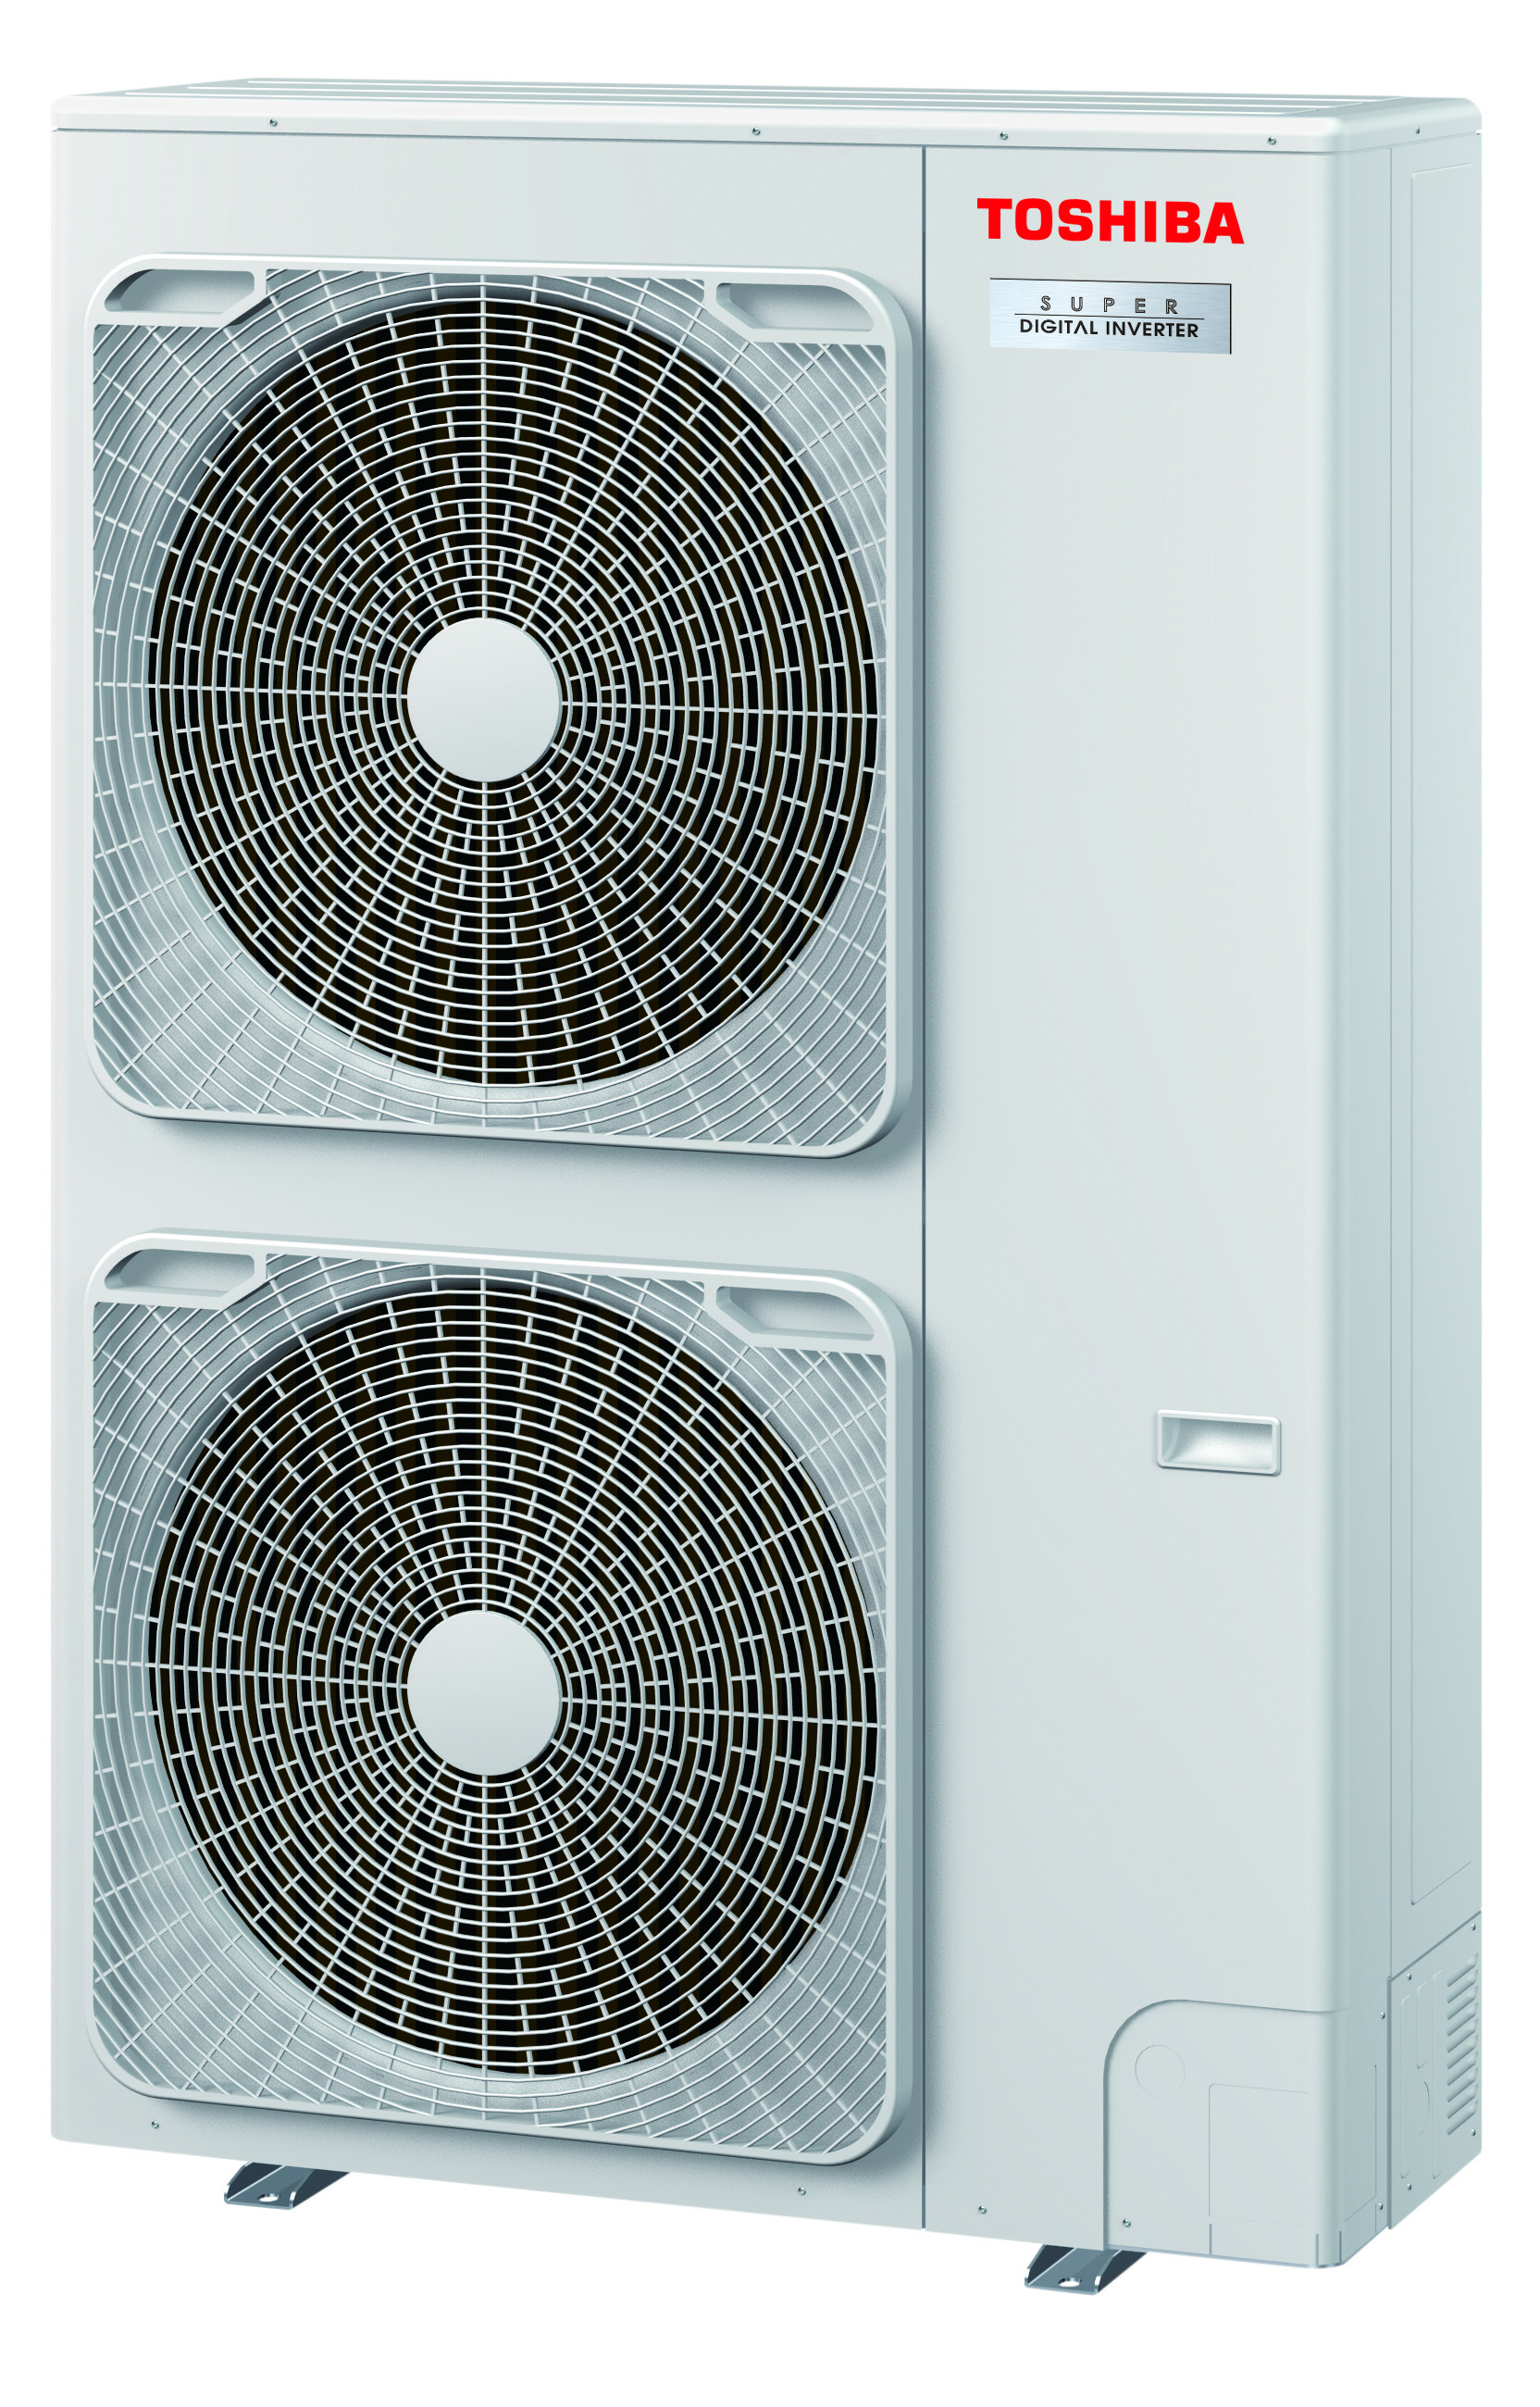 https://www.toshiba-aircon.co.uk/wp-content/uploads/2018/05/RAV_SDIS1_110-140_Side_jpeg.jpg